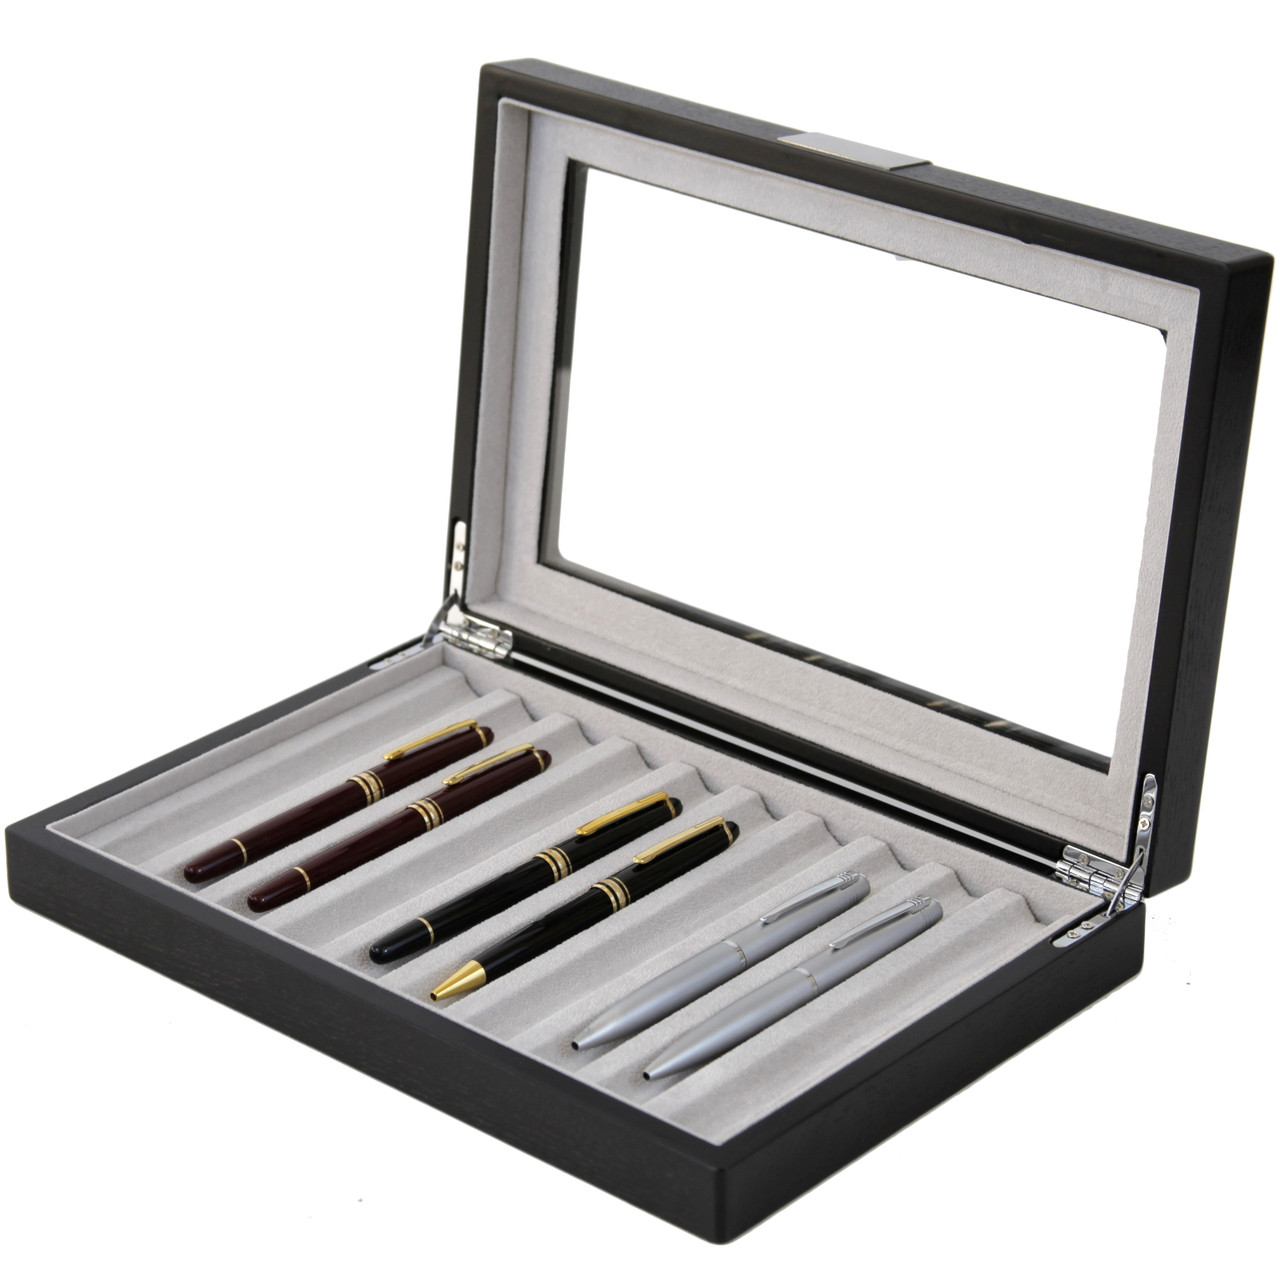 Pen Display Box in Black by Tech Swiss - Side View Open - Main